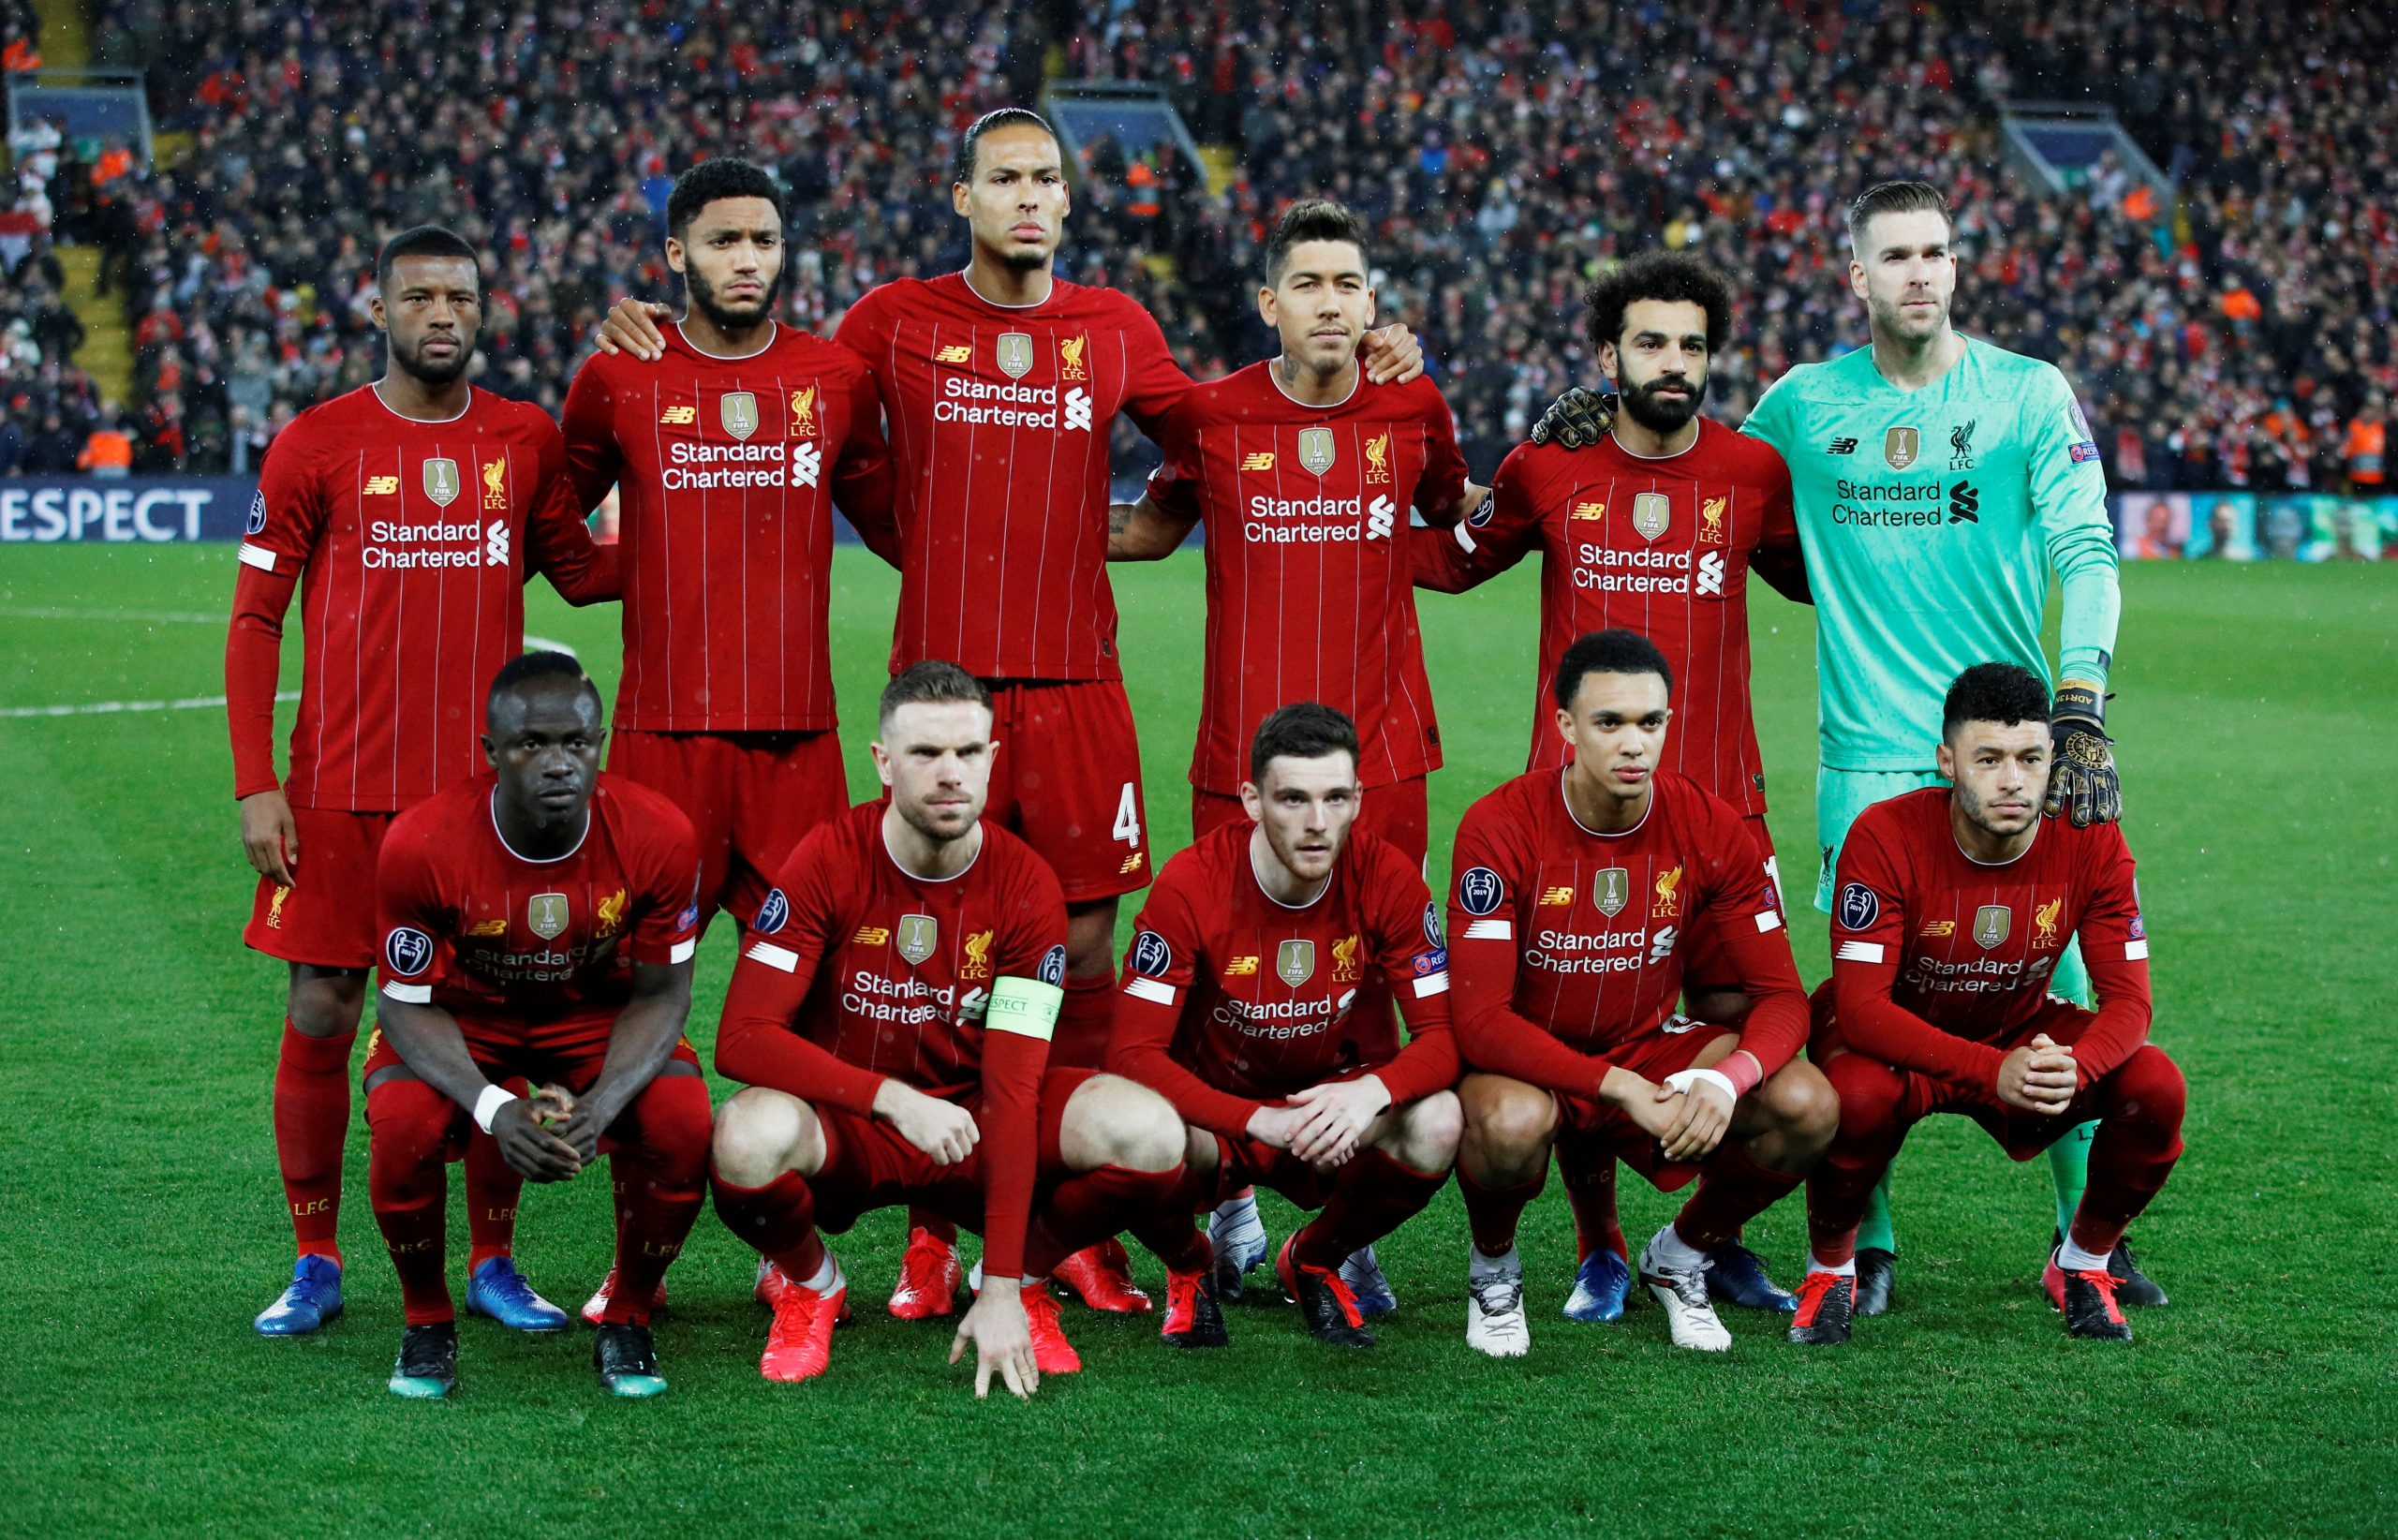 Liverpool FC Players and their Age 2020